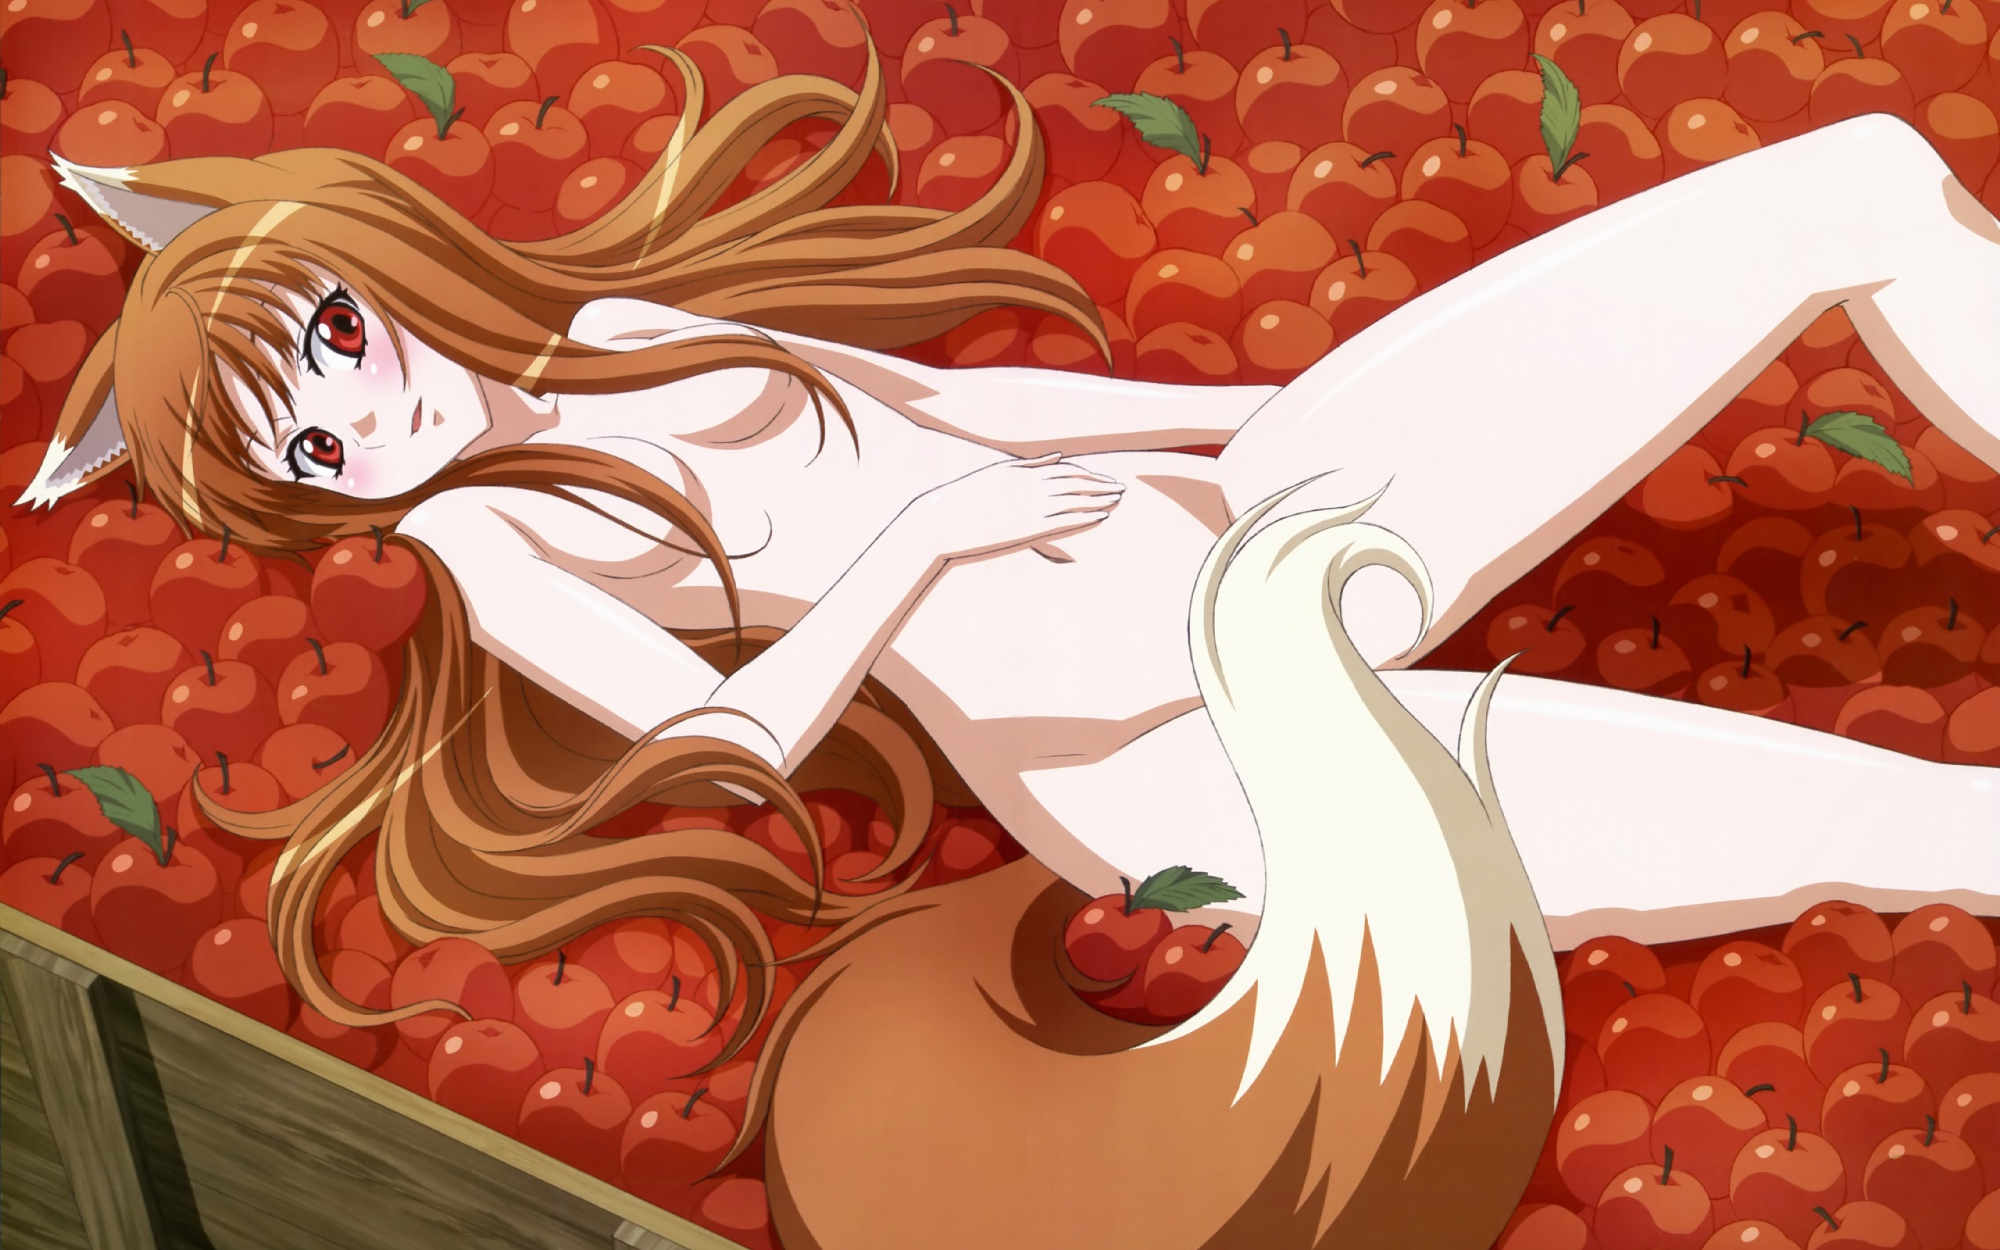 animal_ears apple horo long_hair nude orange_hair red_eyes spice_and_wolf tail wolfgirl